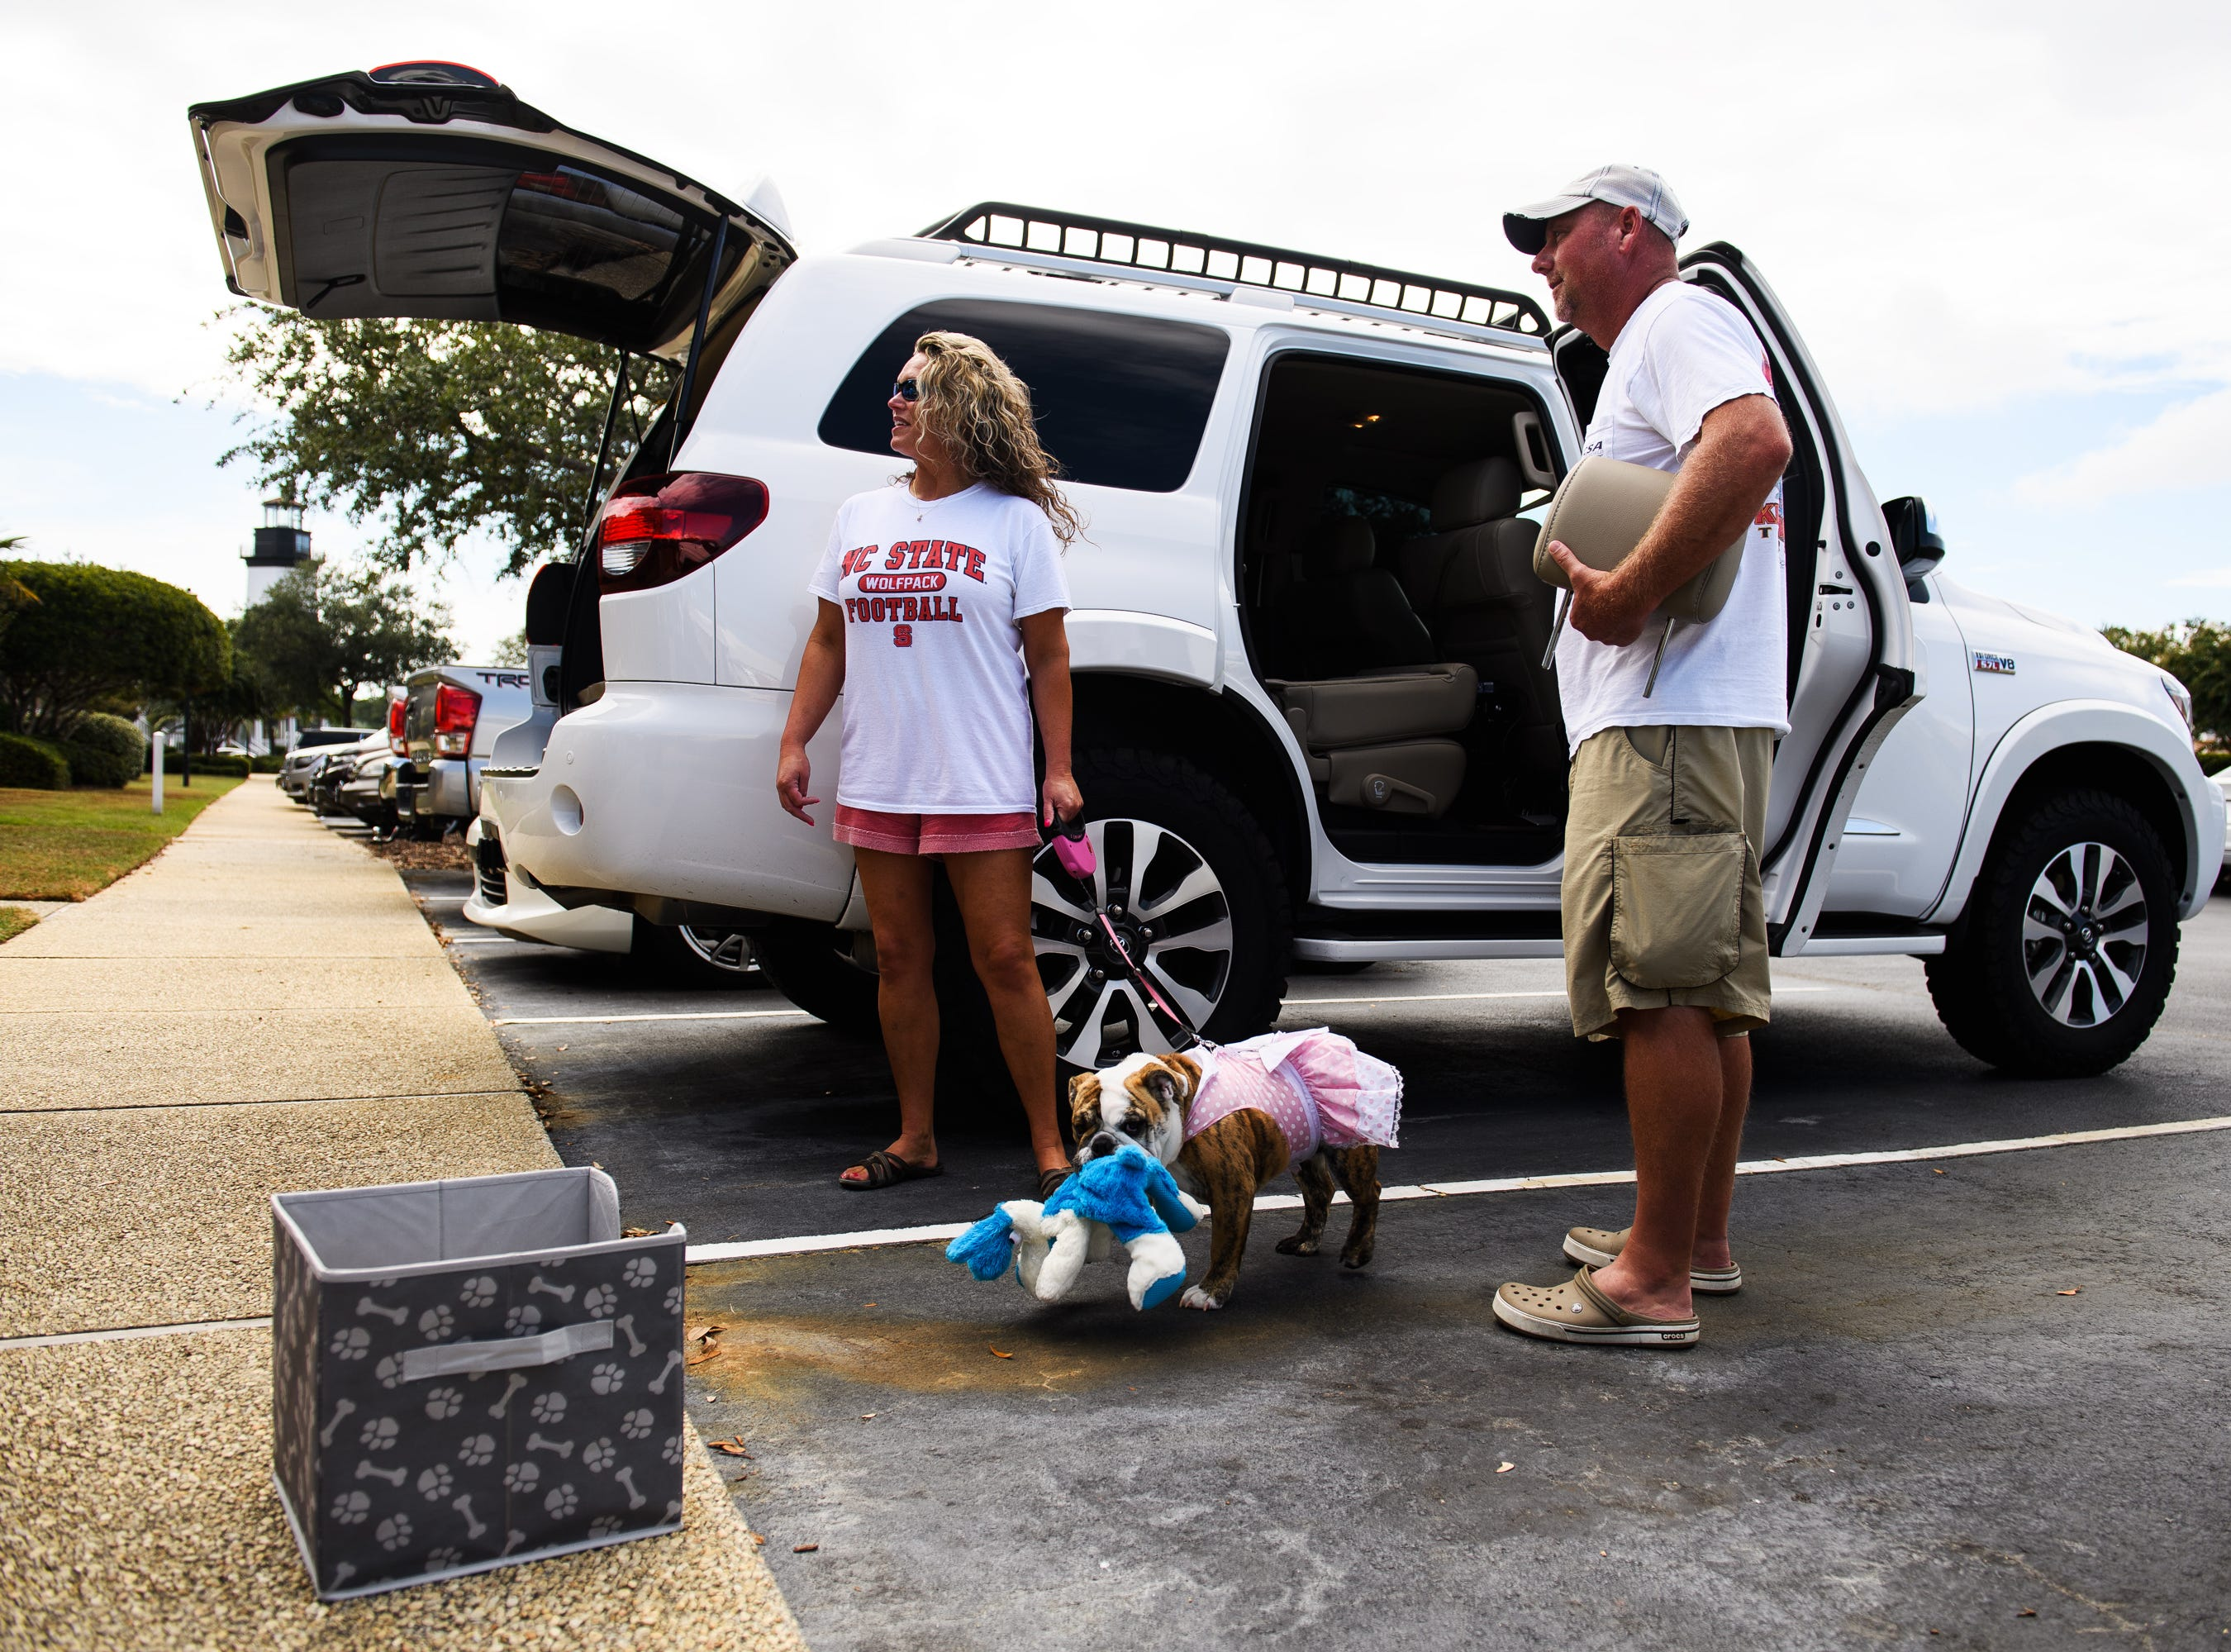 Billy and Stacy Prince and their dog Pixie begin packing up their vehicles to evacuate their North Myrtle Beach home on Wednesday, Sept. 12, 2018. Billy Prince, who grew up in the area, said he stayed for past hurricanes but didn't want to take the risk with Hurricane Florence.